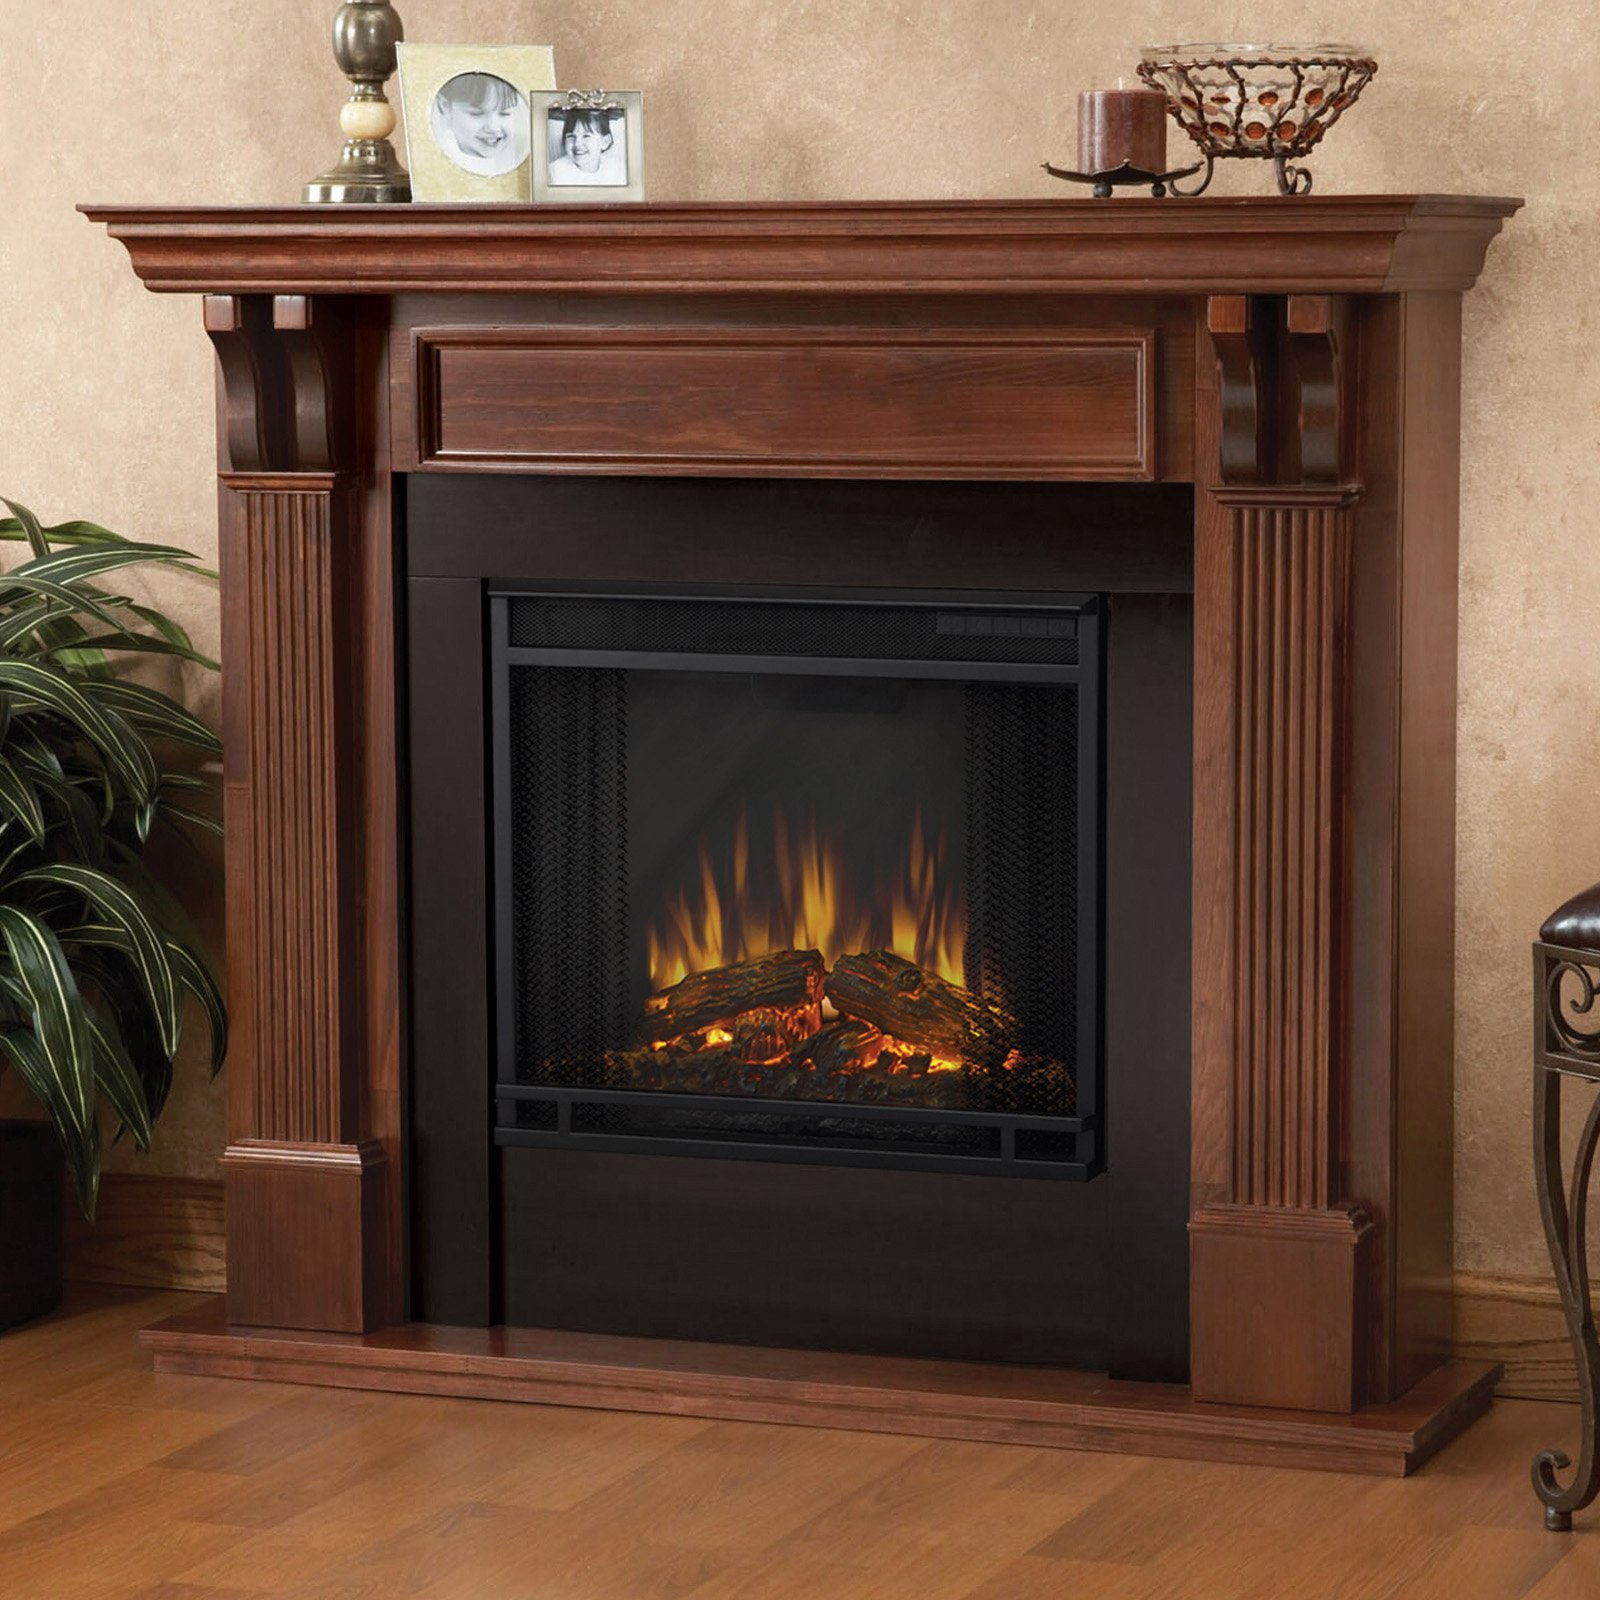 mahogany fireplace real sale walmart ashley com on ip indoor electric flame